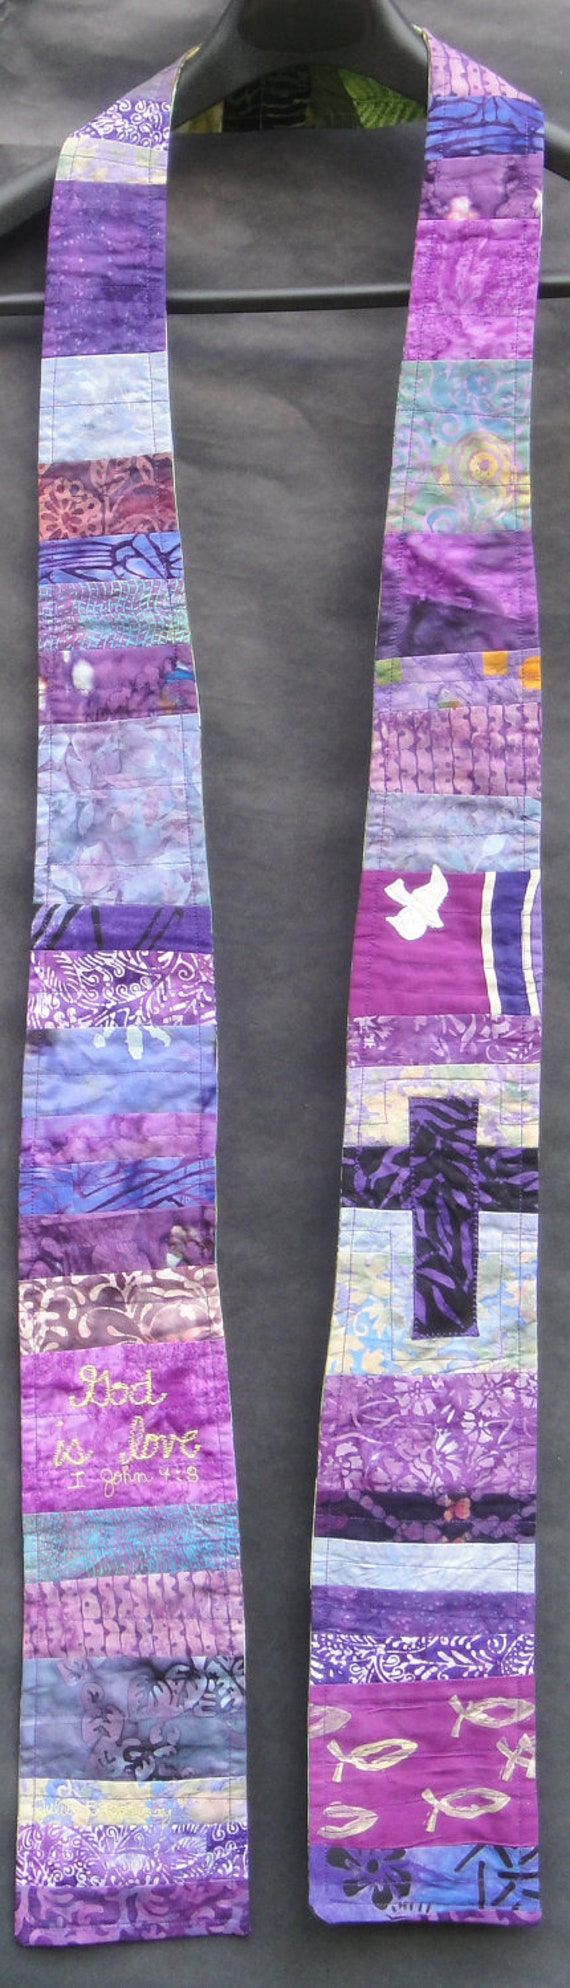 Green/Purple  Reversible Ministerial Clergy Stole